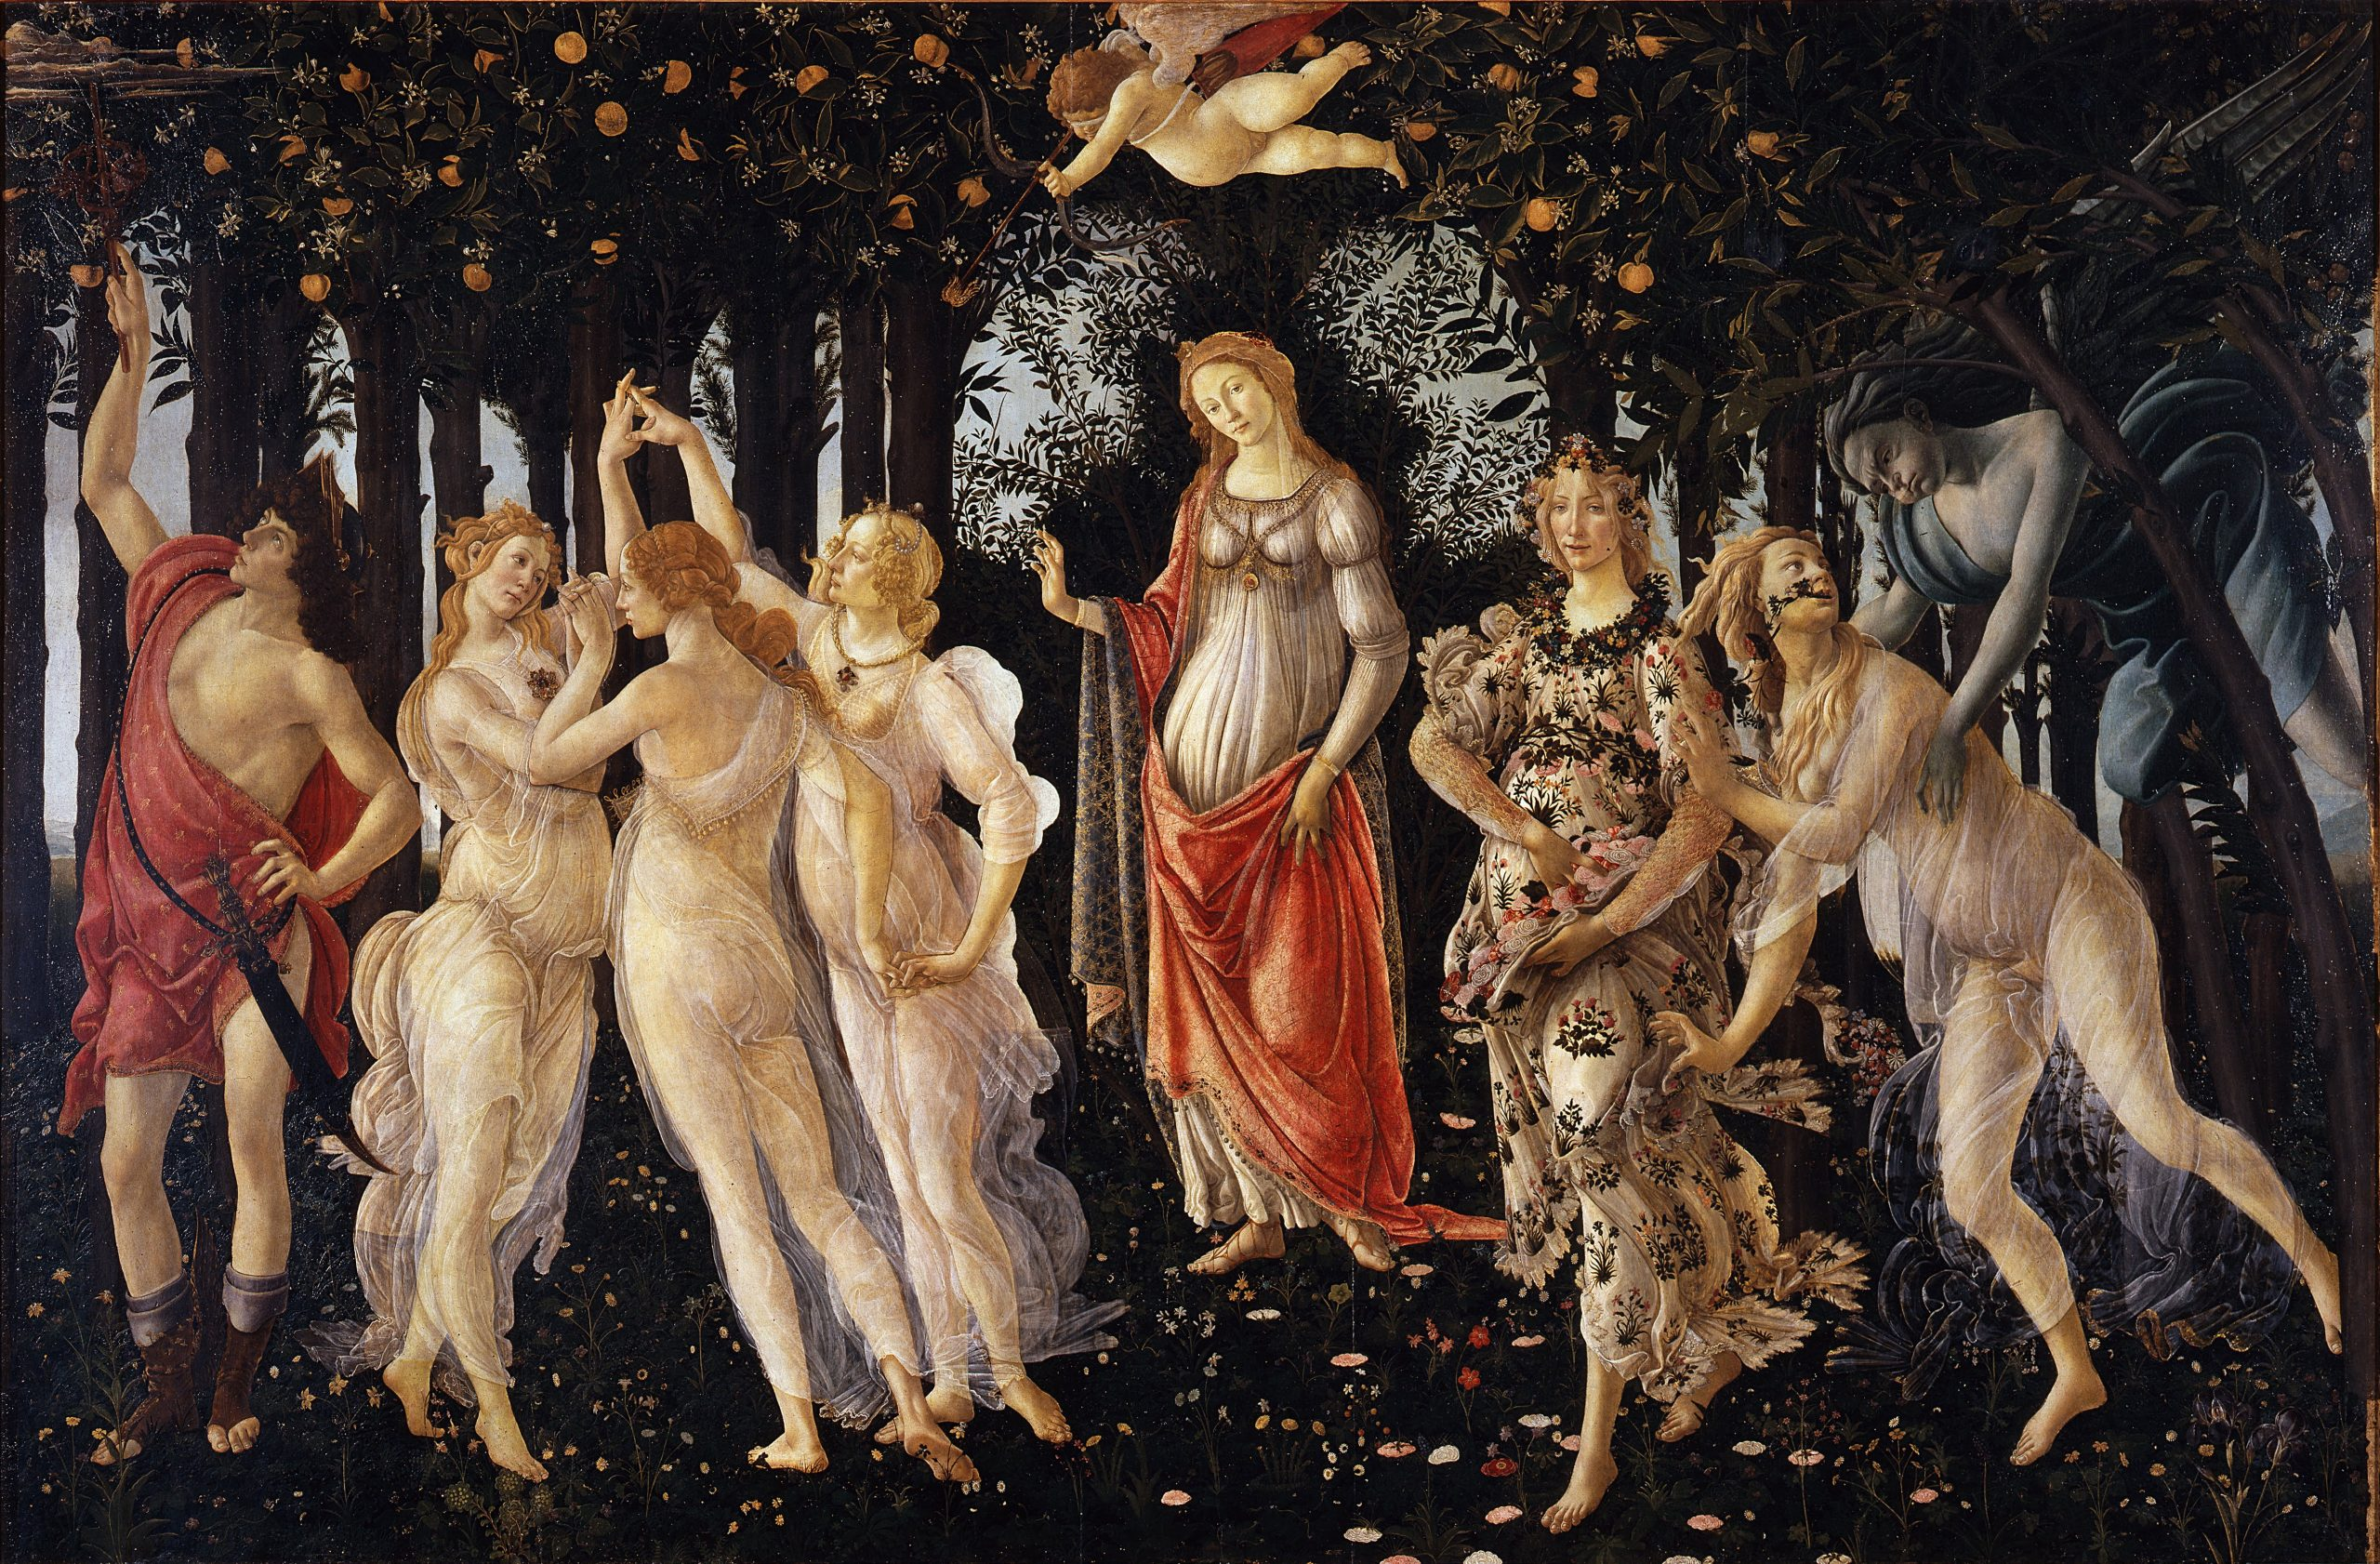 Sandro Botticelli's 'Primavera' Is a Mysterious Celebration of Spring. Here Are 4 Things You May Not Know About This Marvel